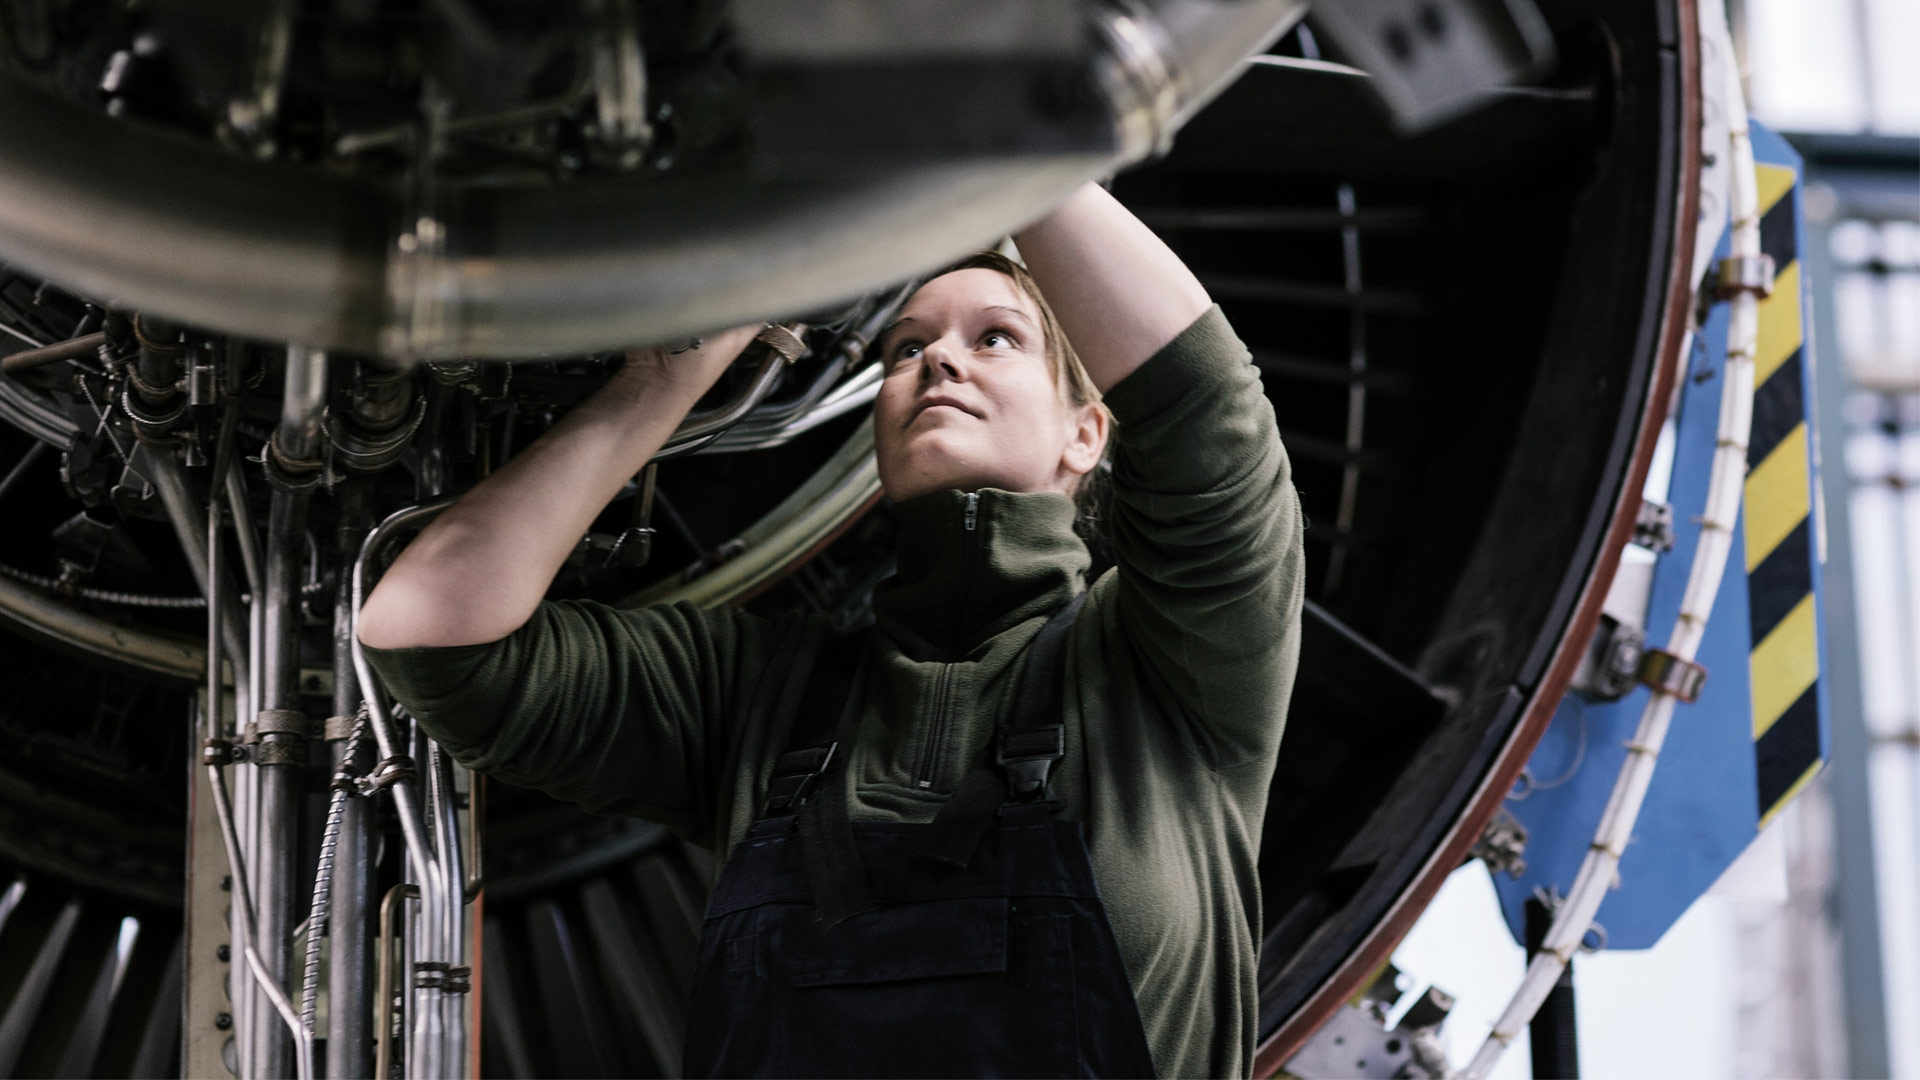 Woman working on an engine